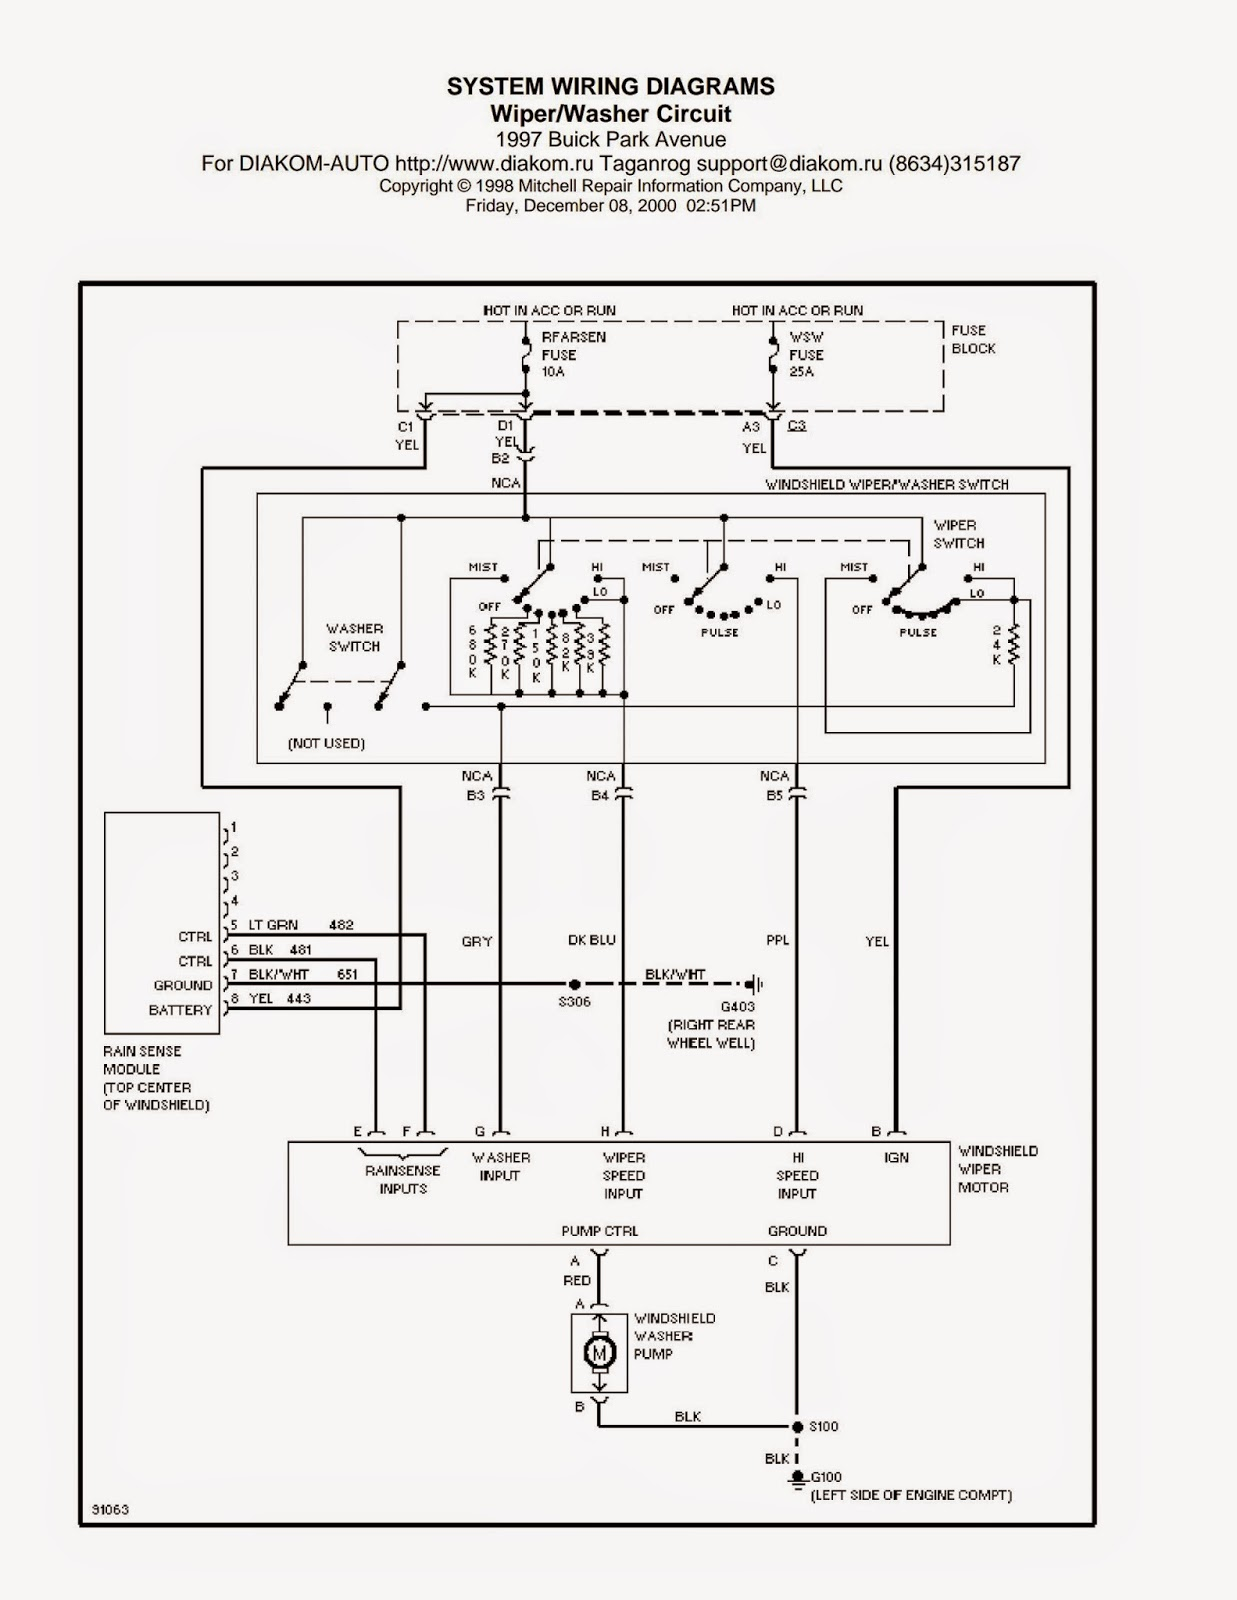 1997 Jeep Wrangler Wiring Diagram Pdf Vista 20 Diagrams And Free Manual Ebooks Cherokee